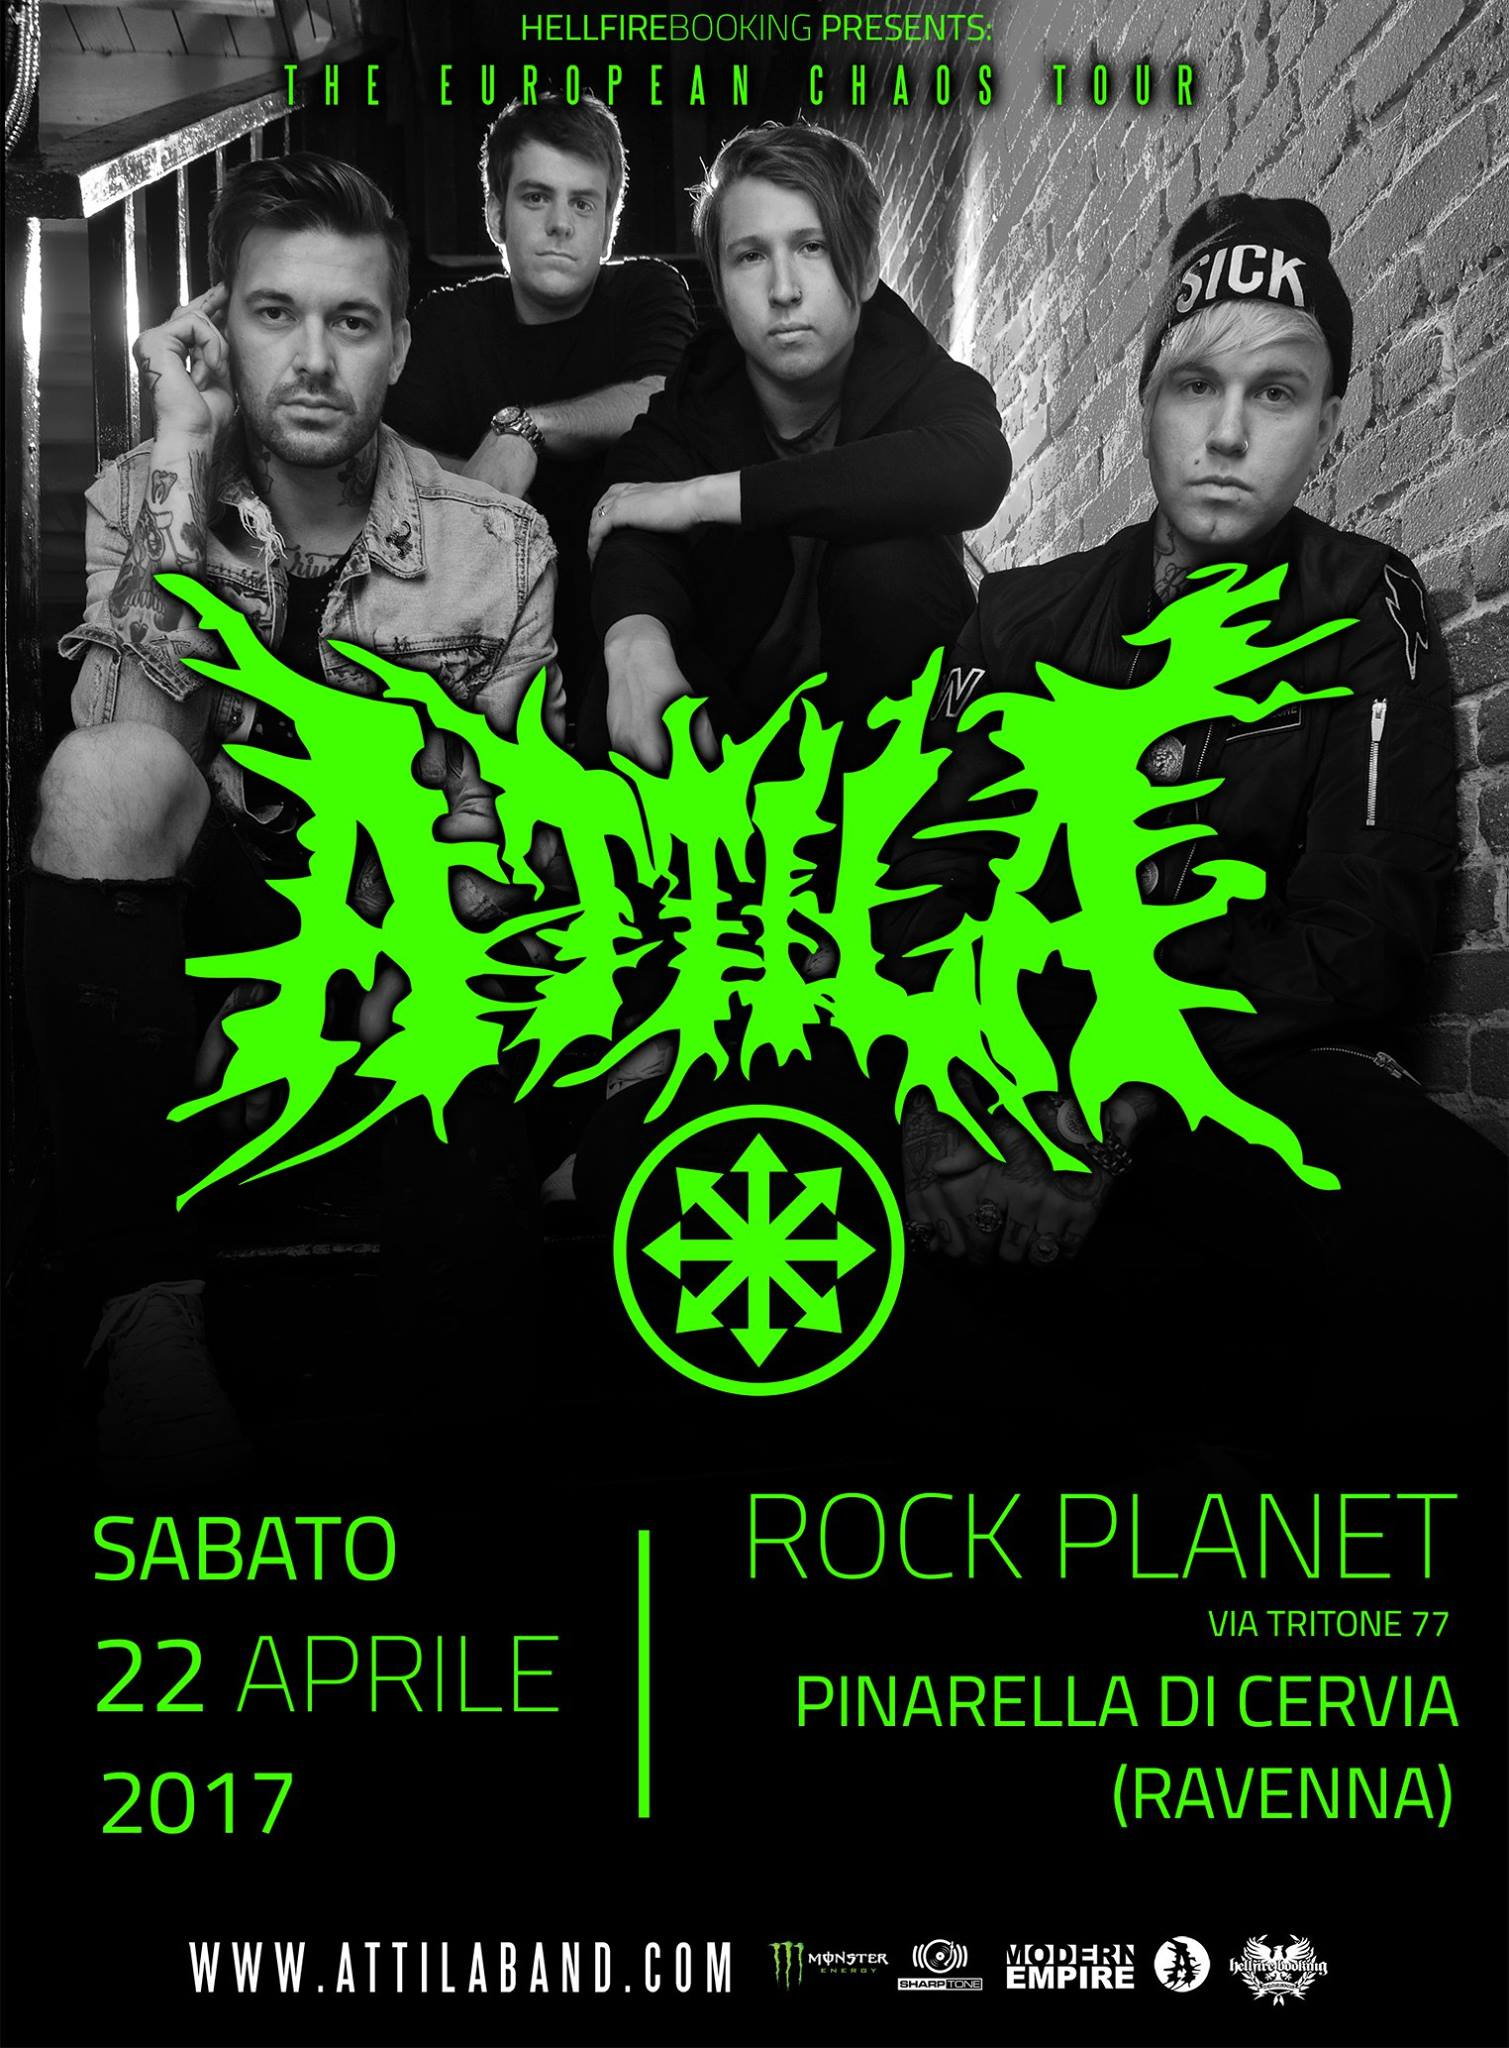 Attila - Rock Planet - The European Chaos Tour 2017 - Promo